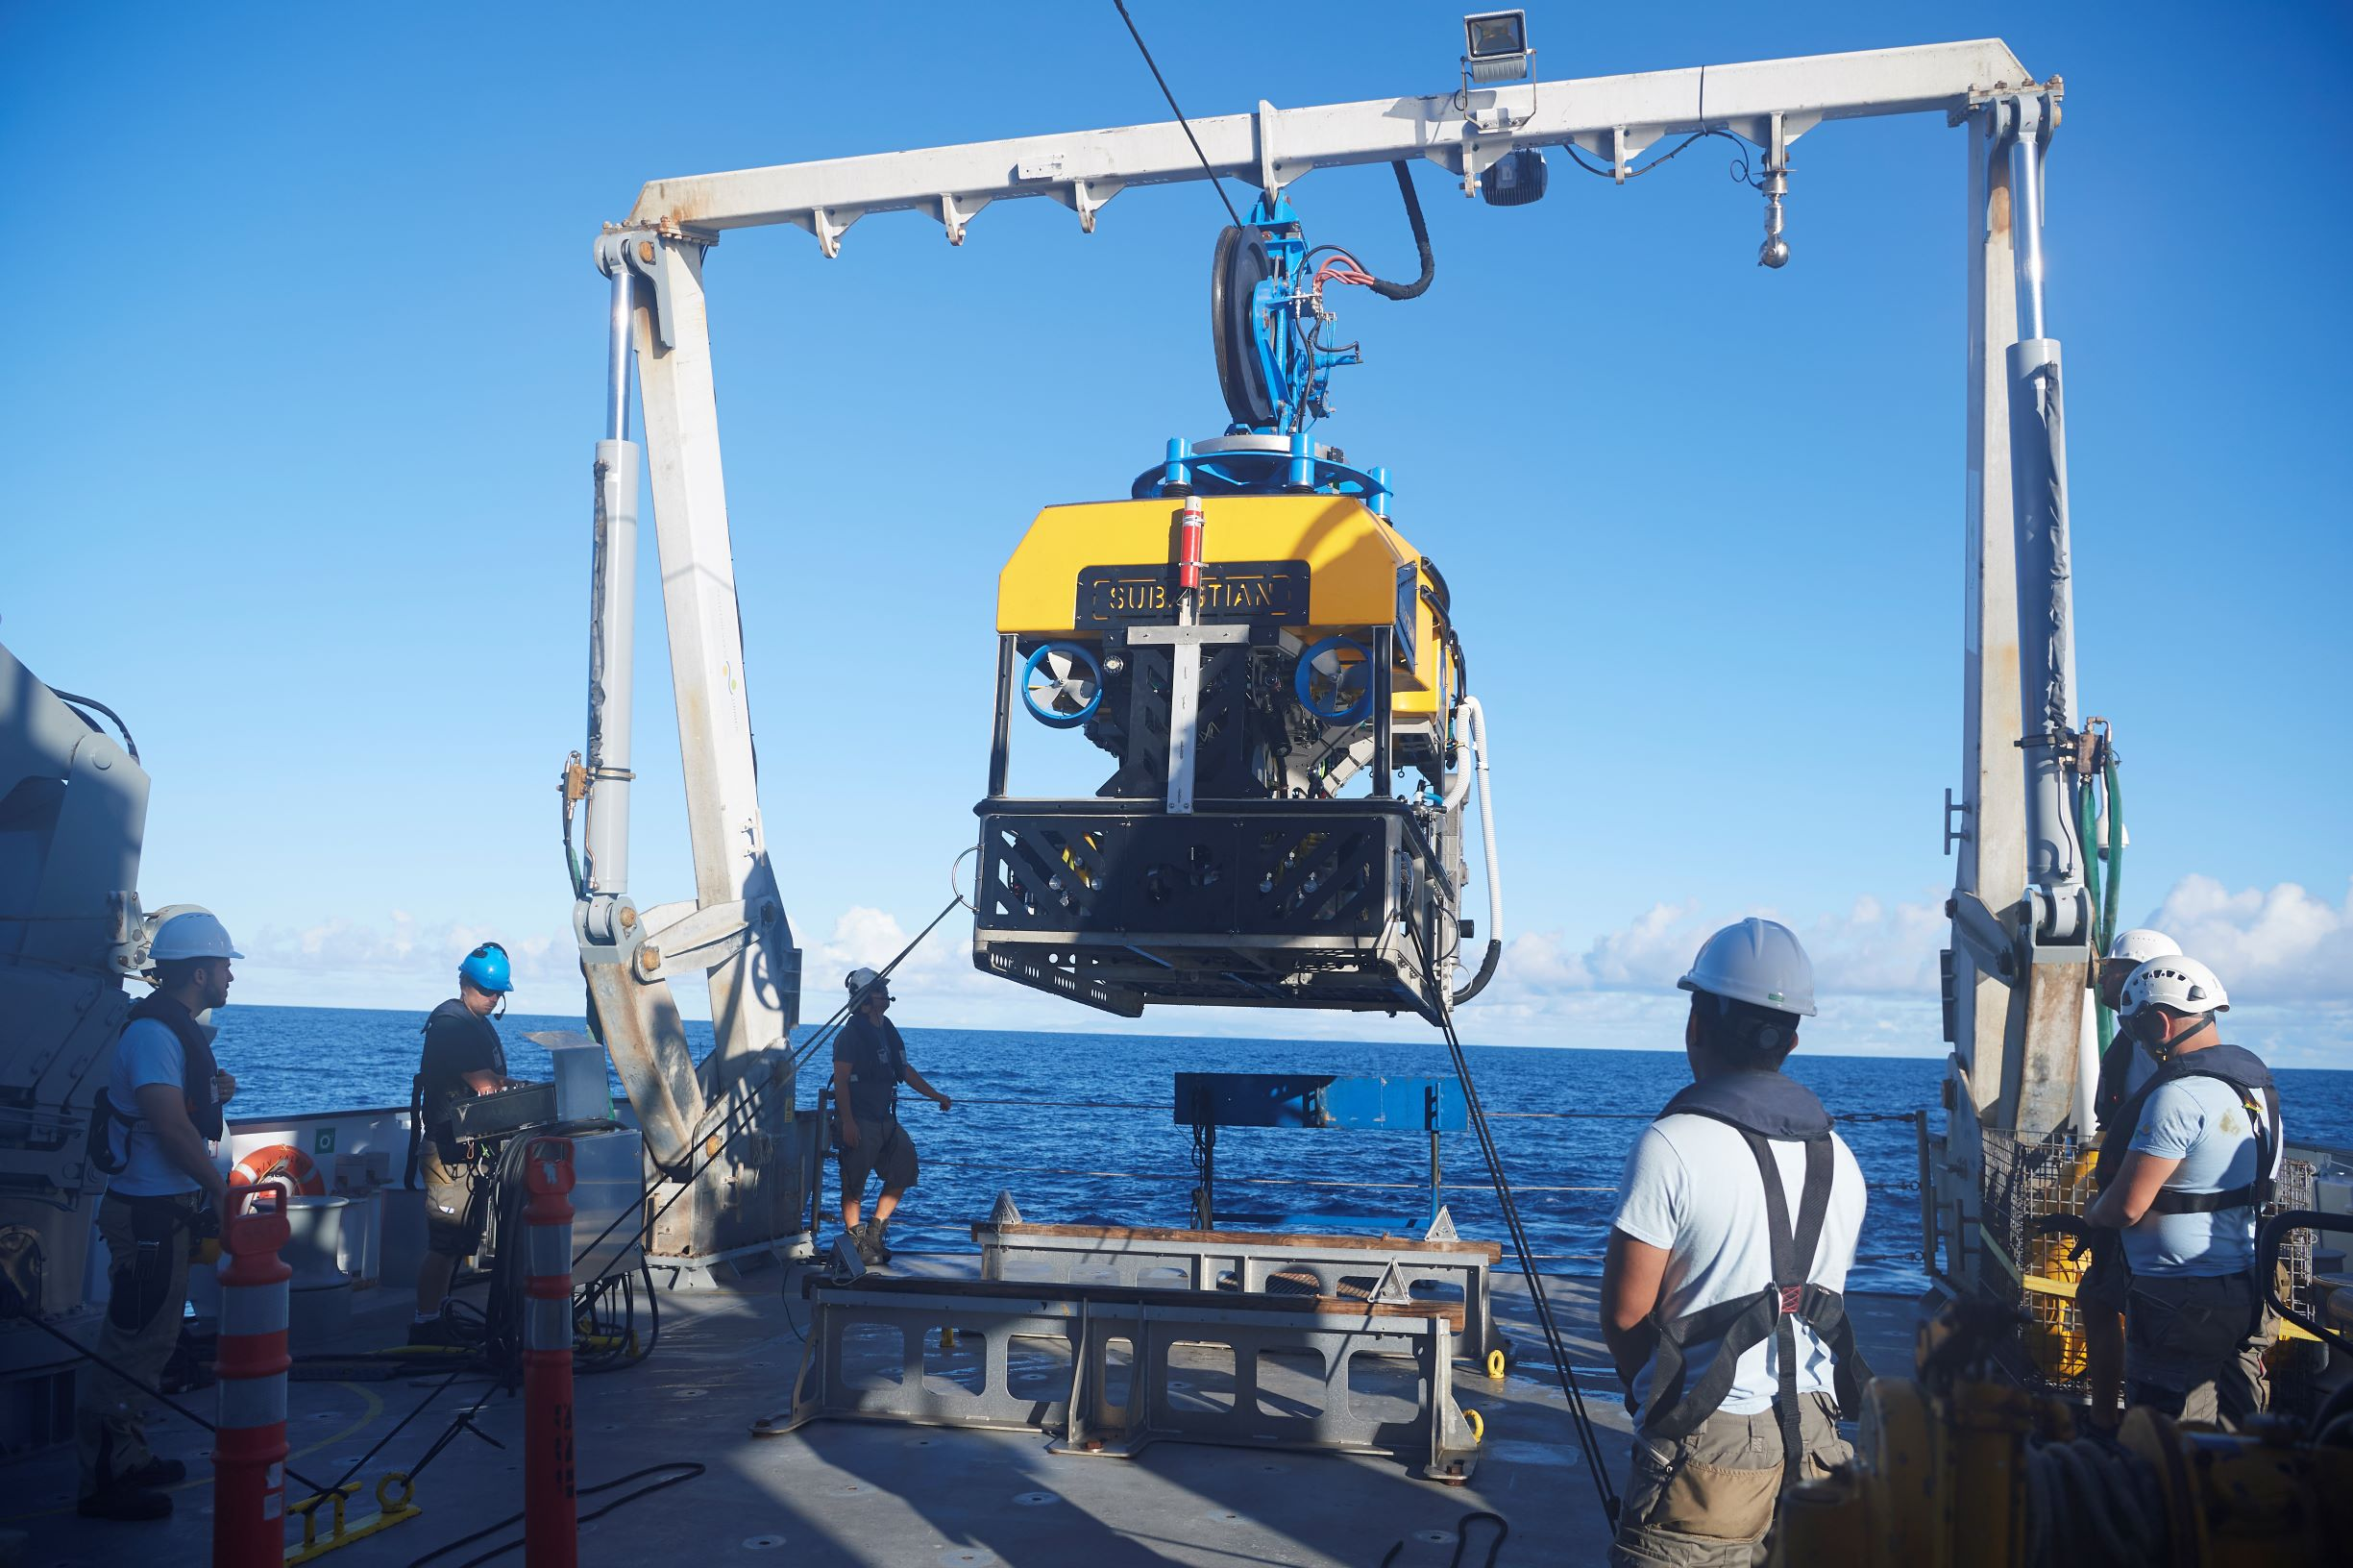 The remotely operated submersible vehicle